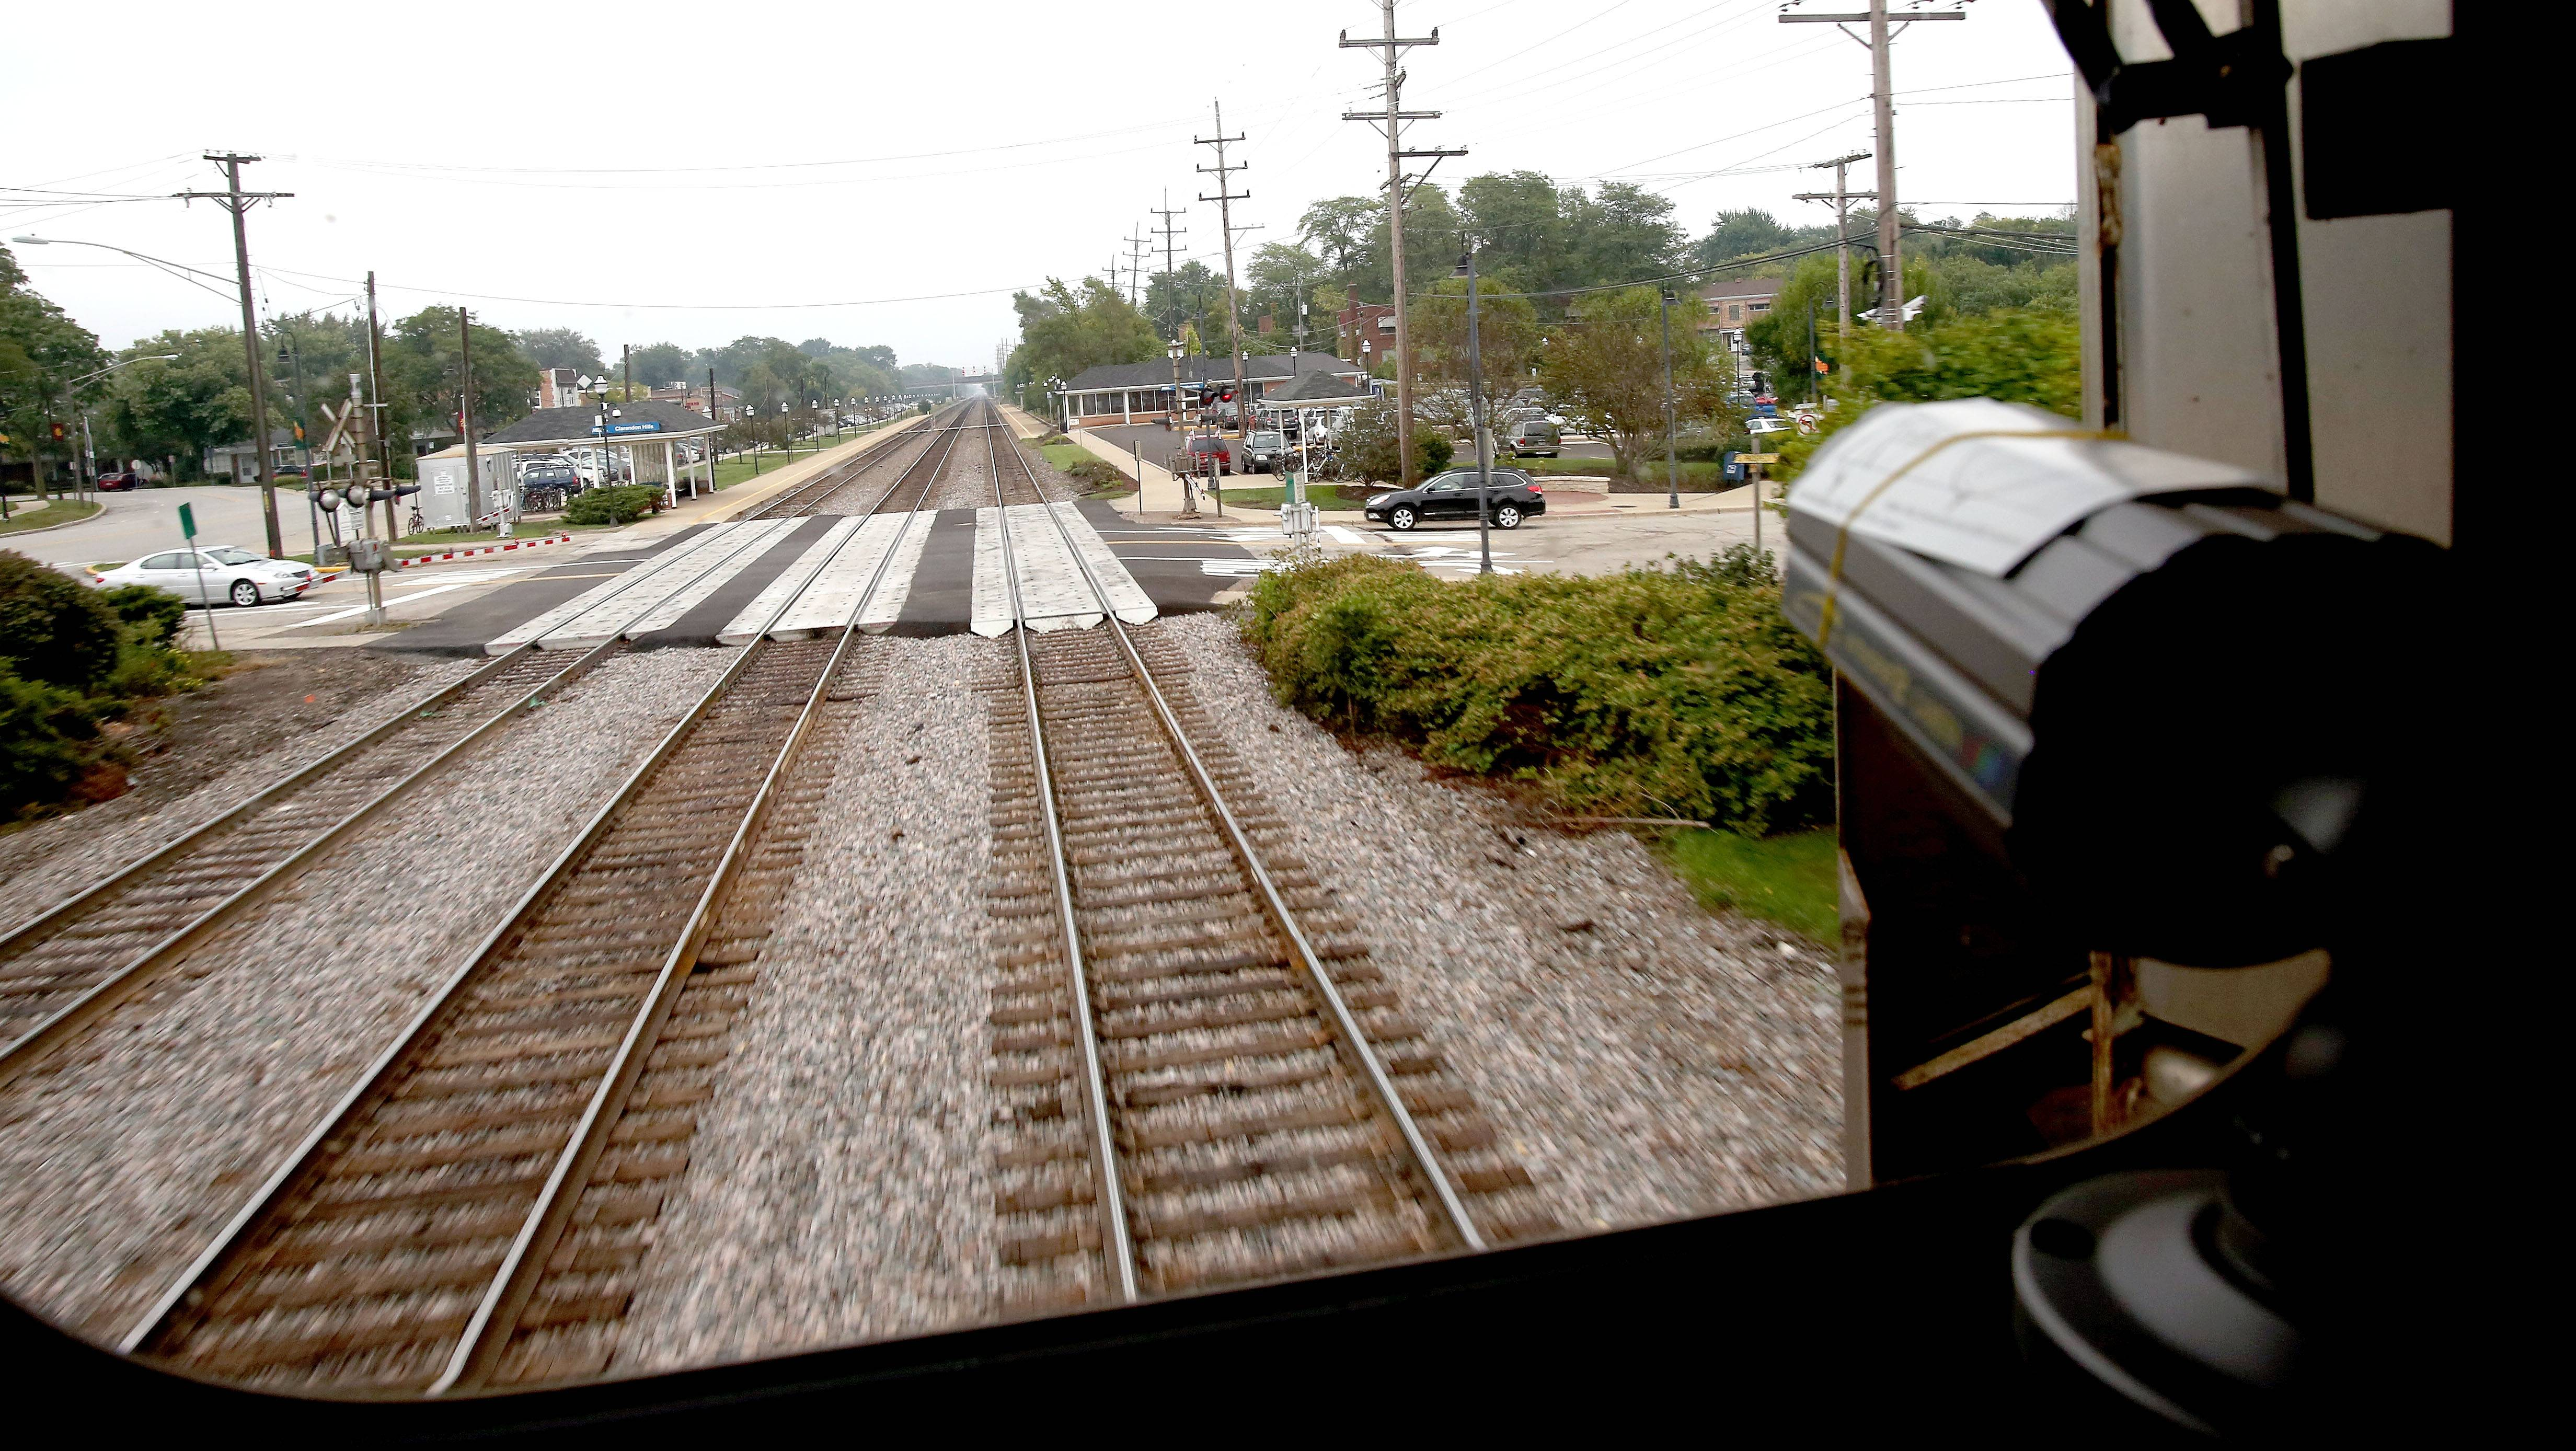 BNSF riders can expect some variety during track repairs